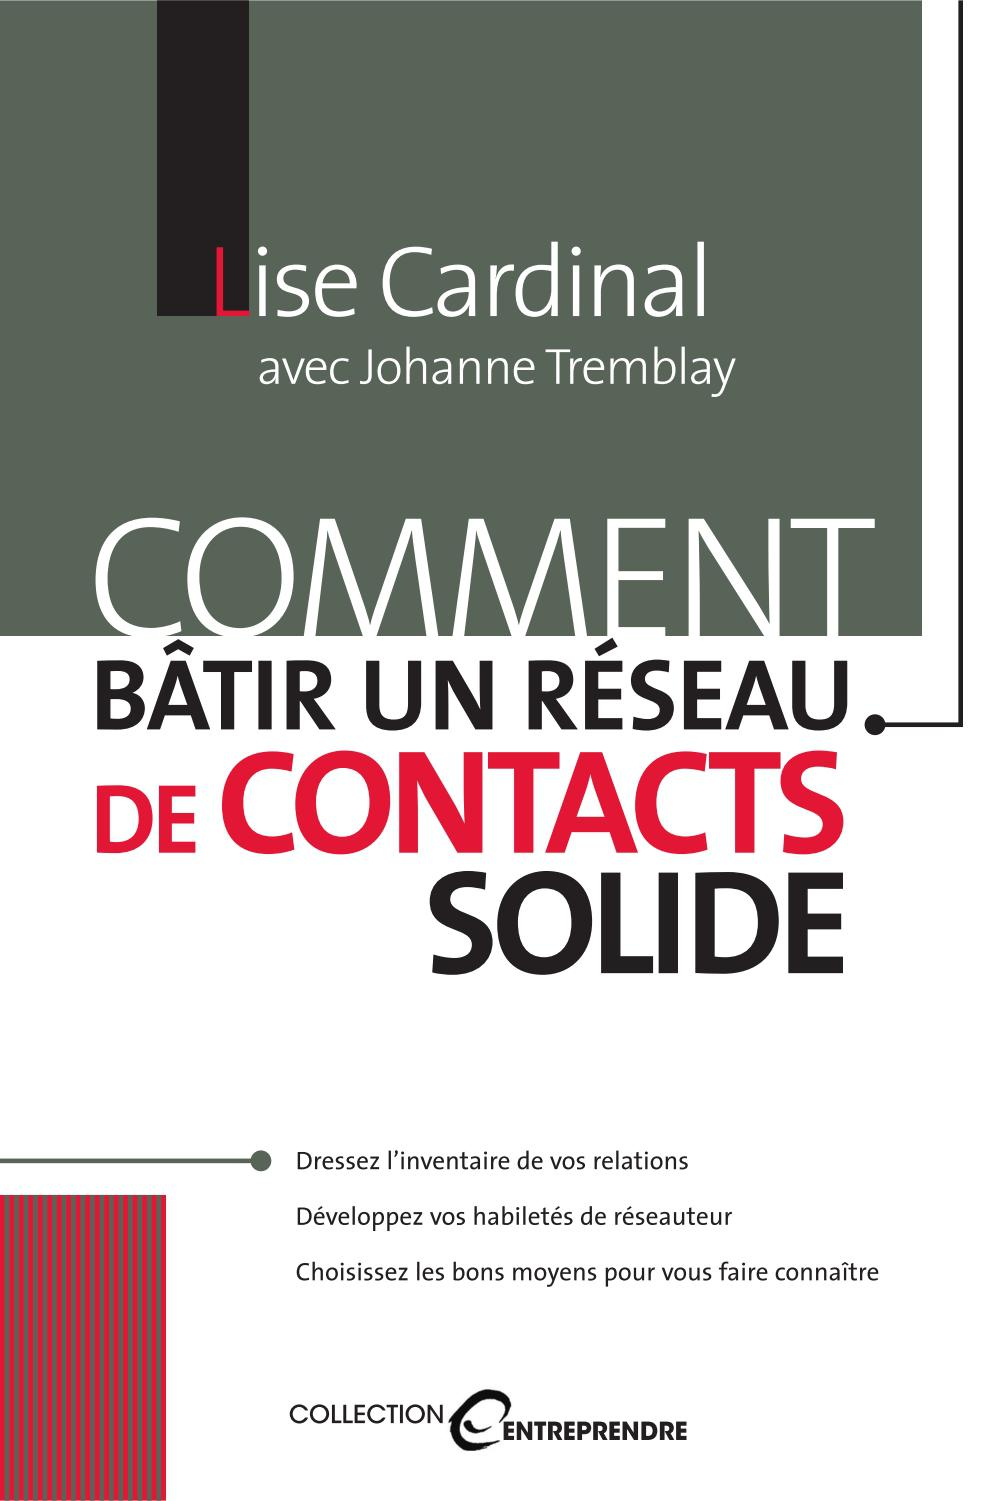 COMMENT BA^TIR UN RE�SEAU DE CONTACTS SOLIDE